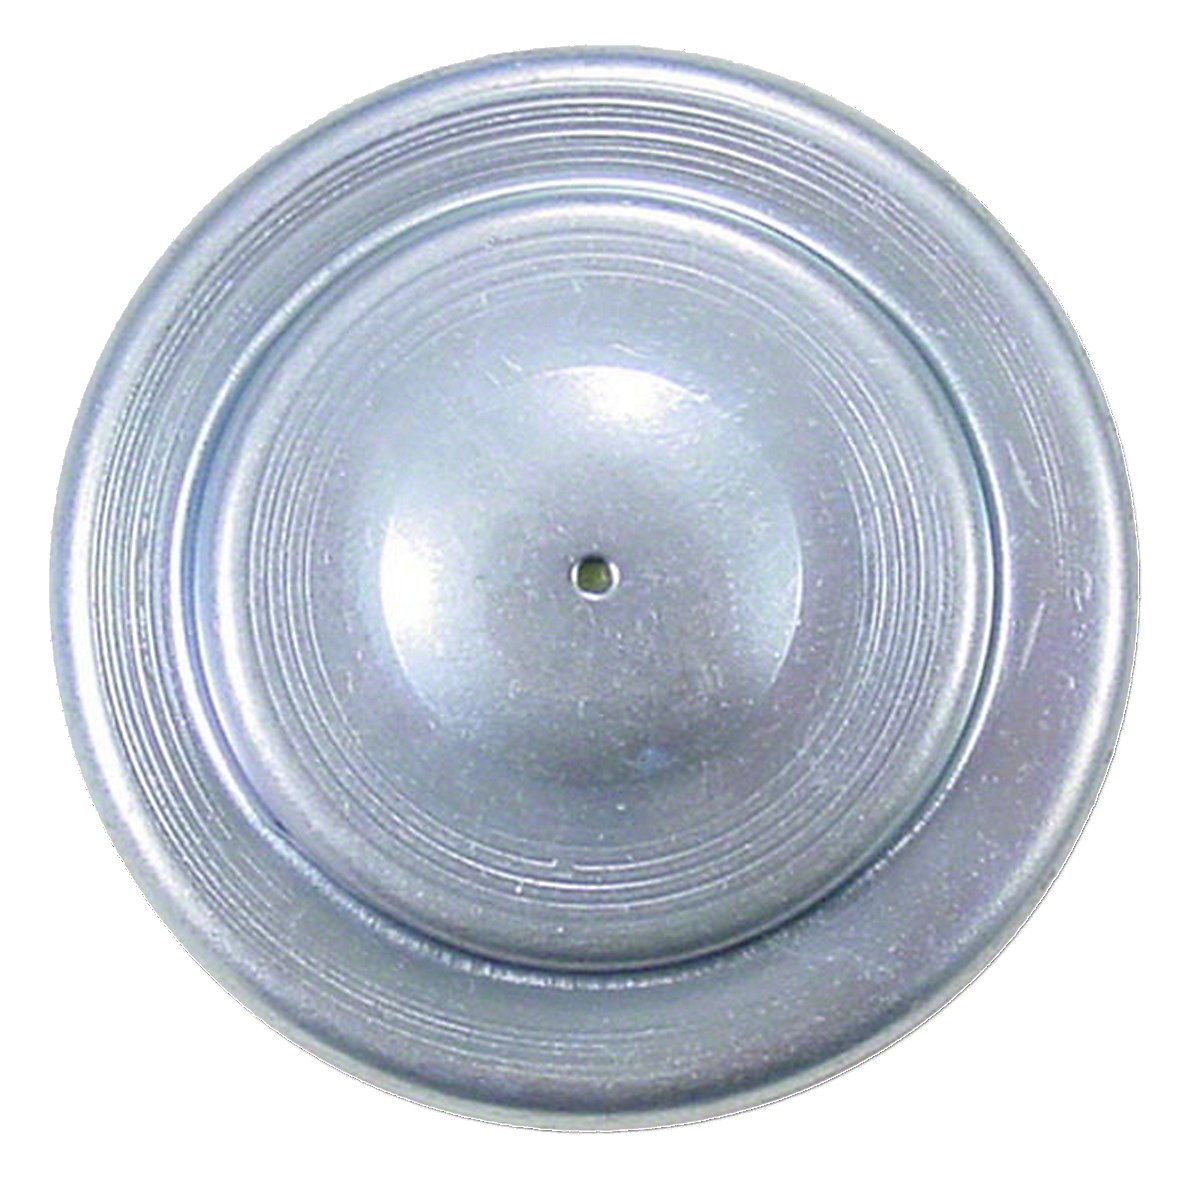 Oil Cap For Massey Ferguson: 35, 50, 85, 88, 40, TE20, TO20, TO30, TO35, Massey Harris: 50.